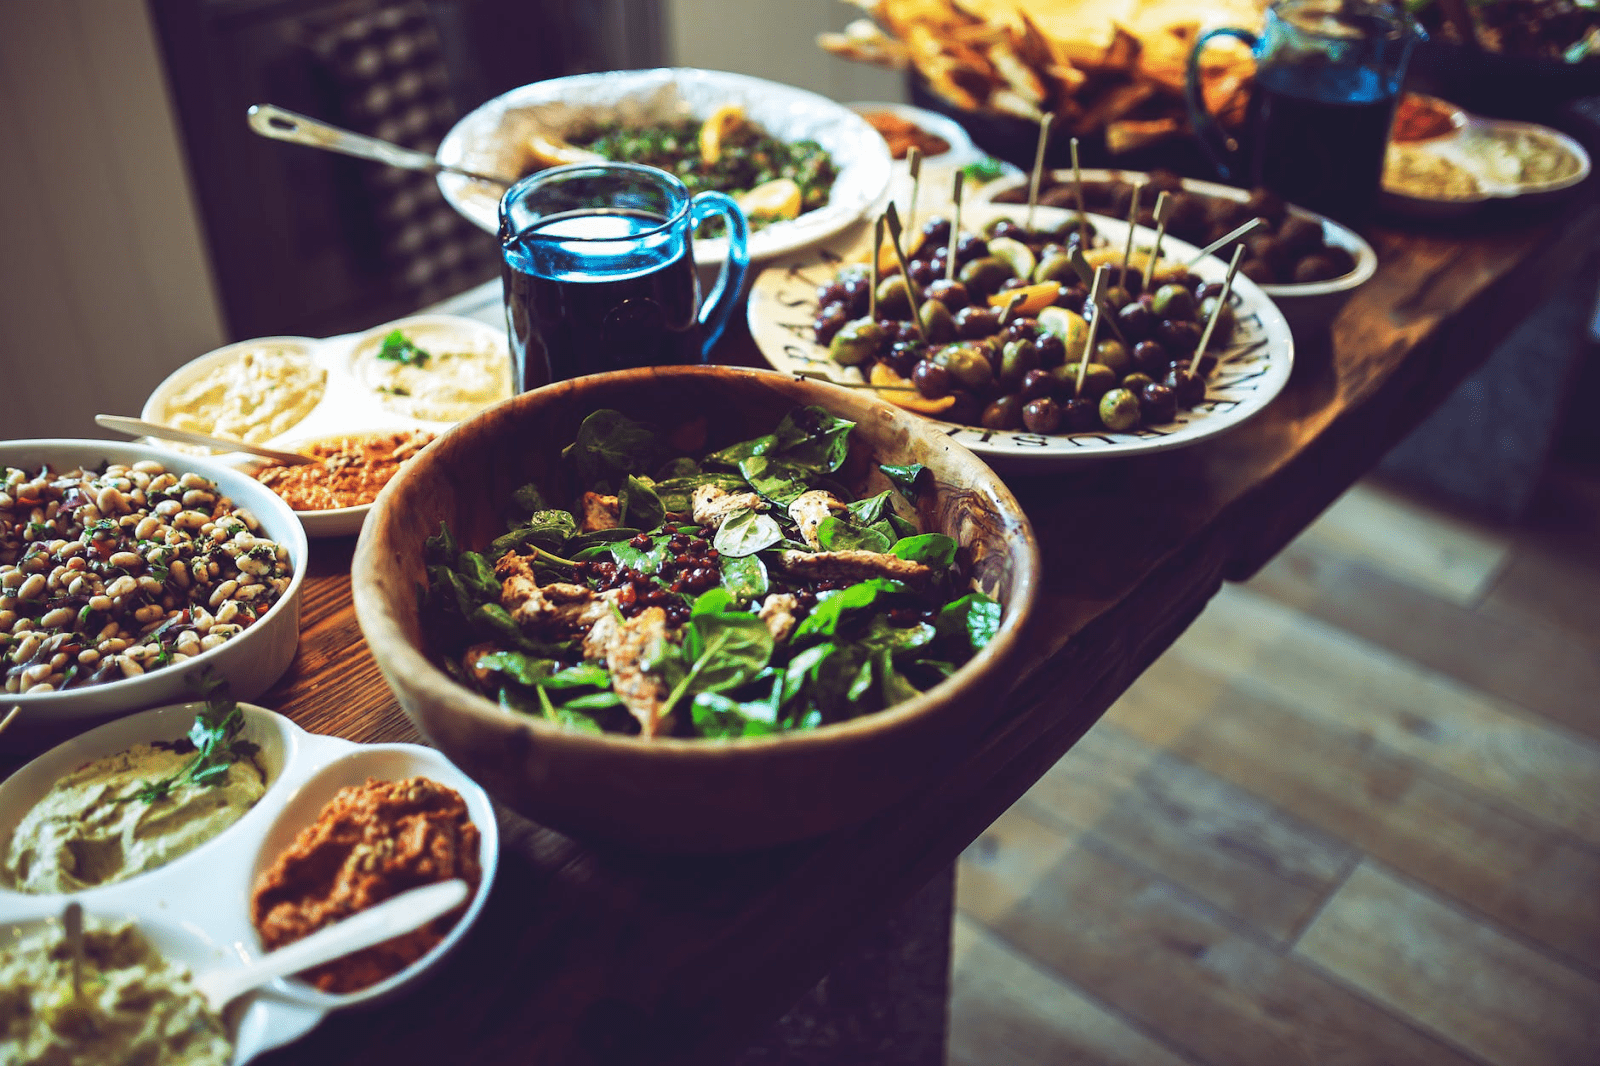 multiple plates of food on a serving tray